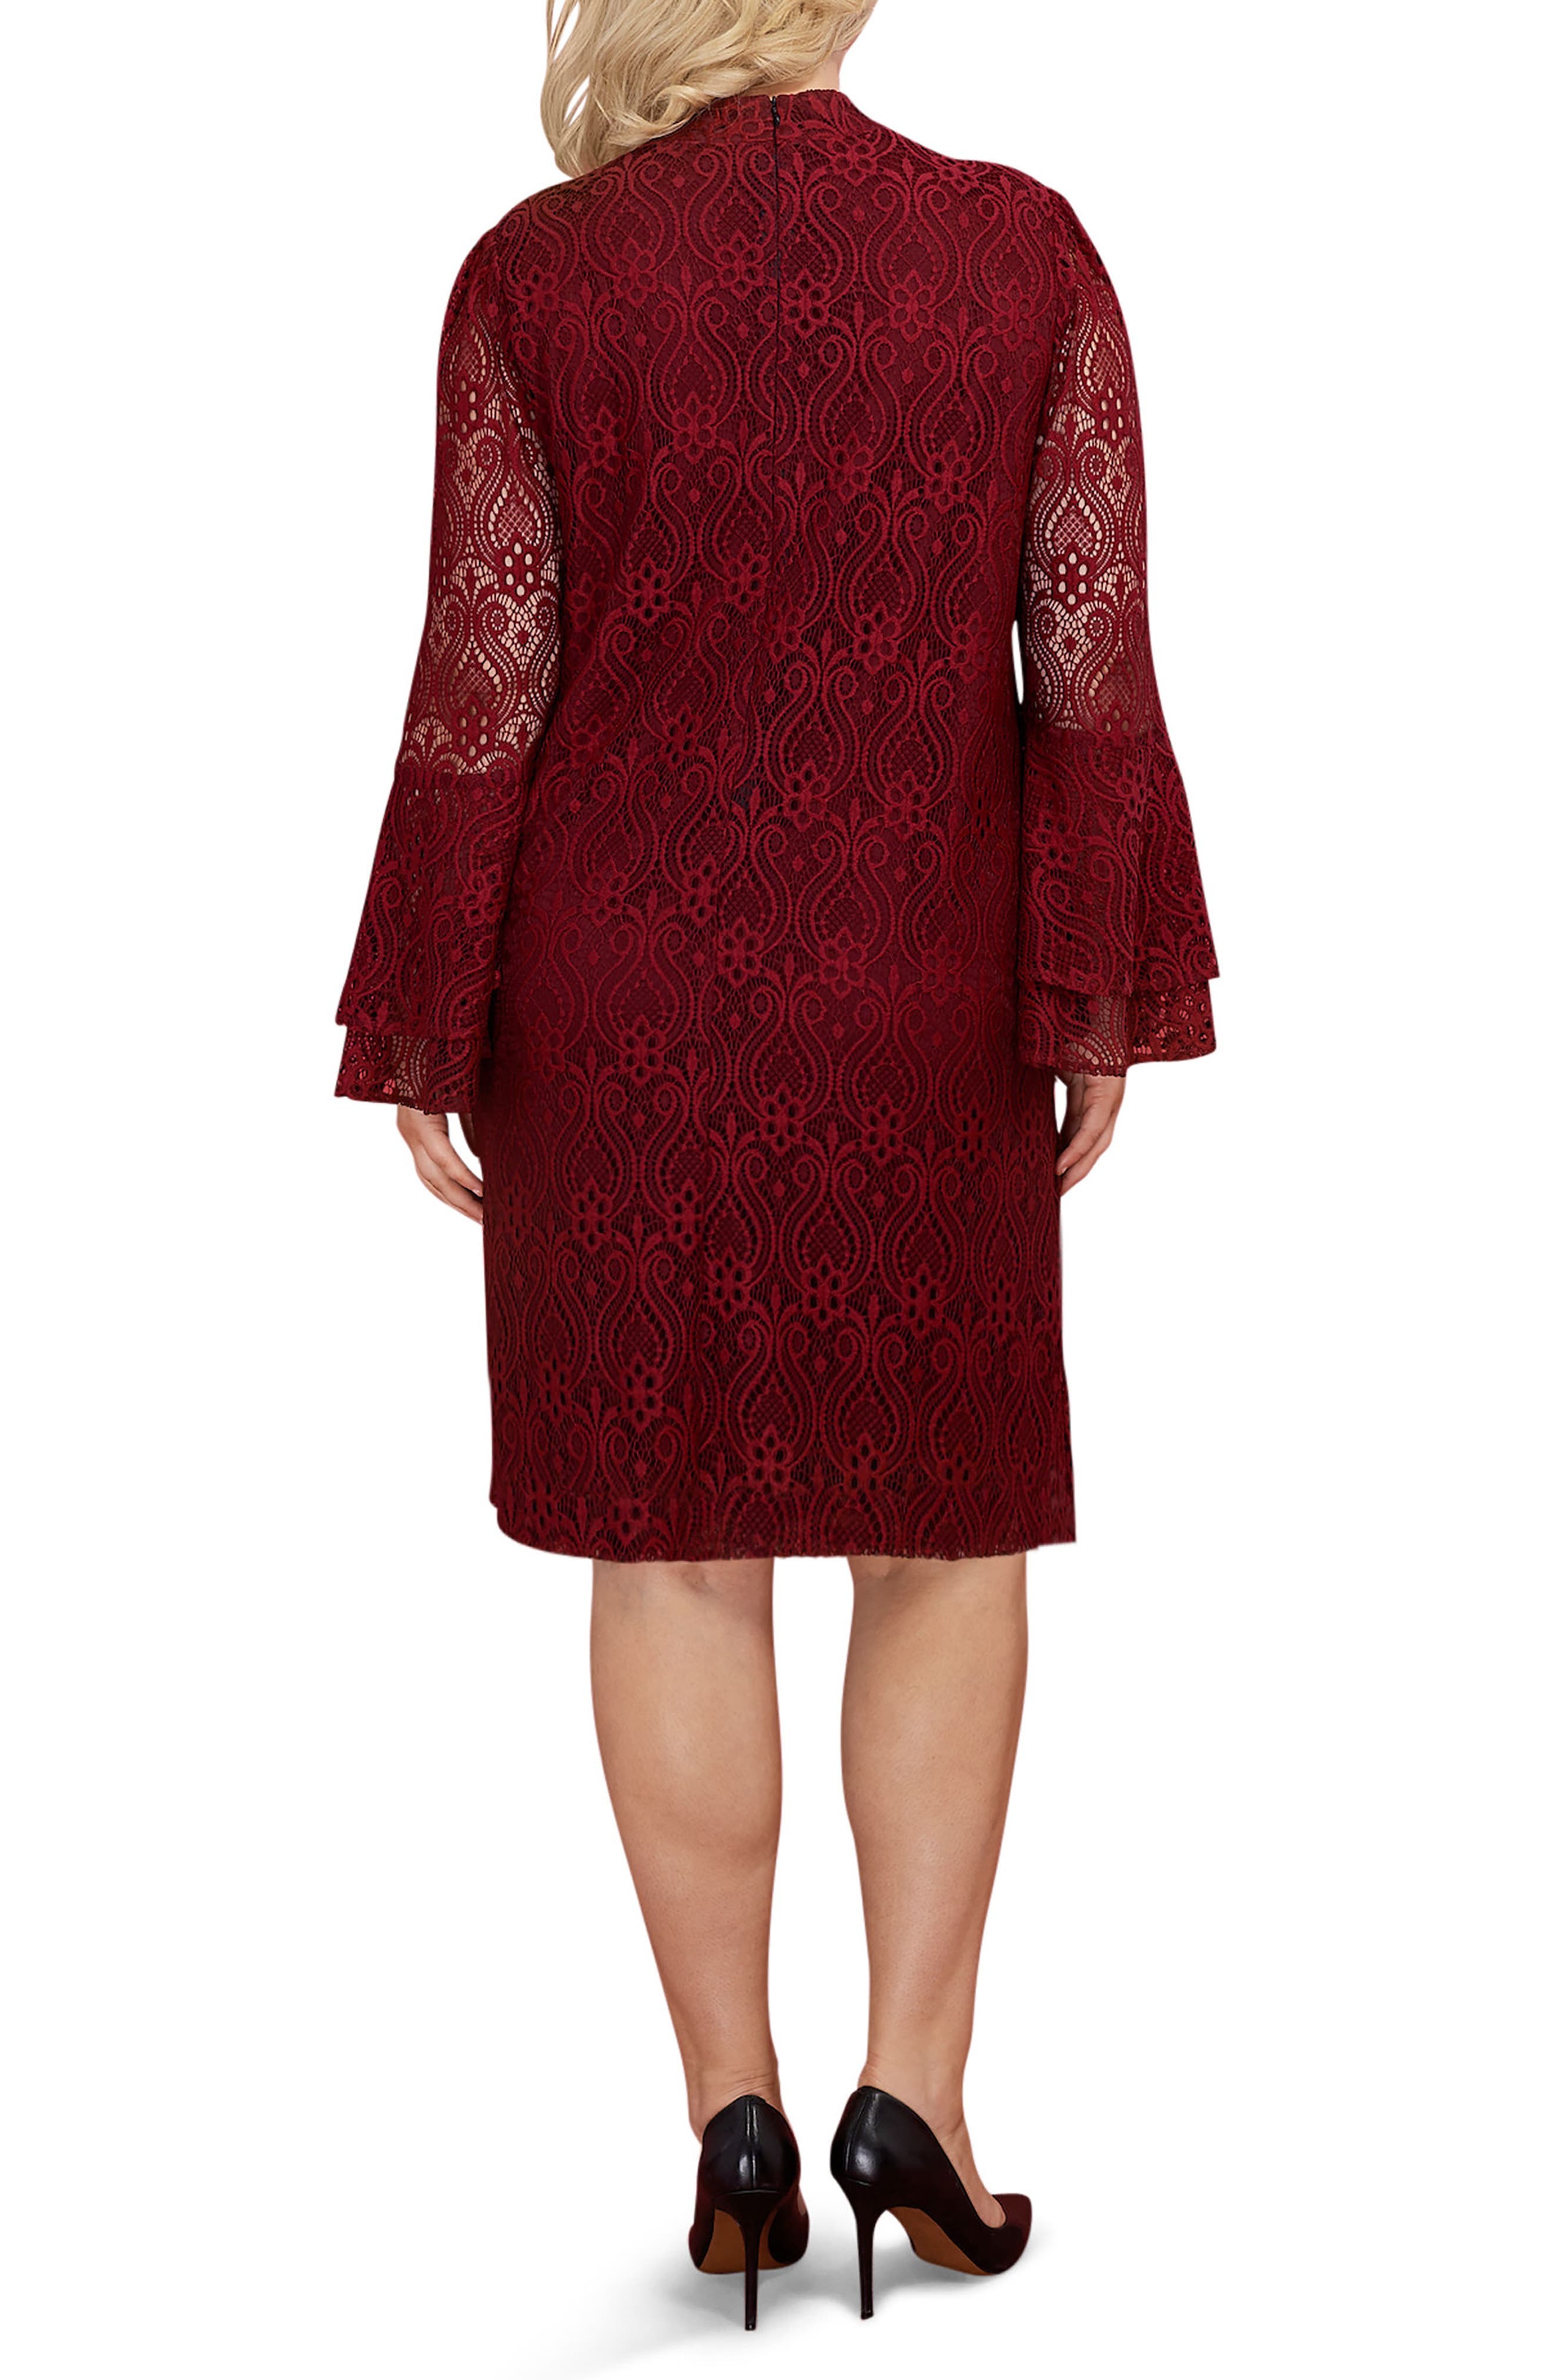 Lace Bell Sleeve A-Line Dress,                             Alternate thumbnail 2, color,                             Wine